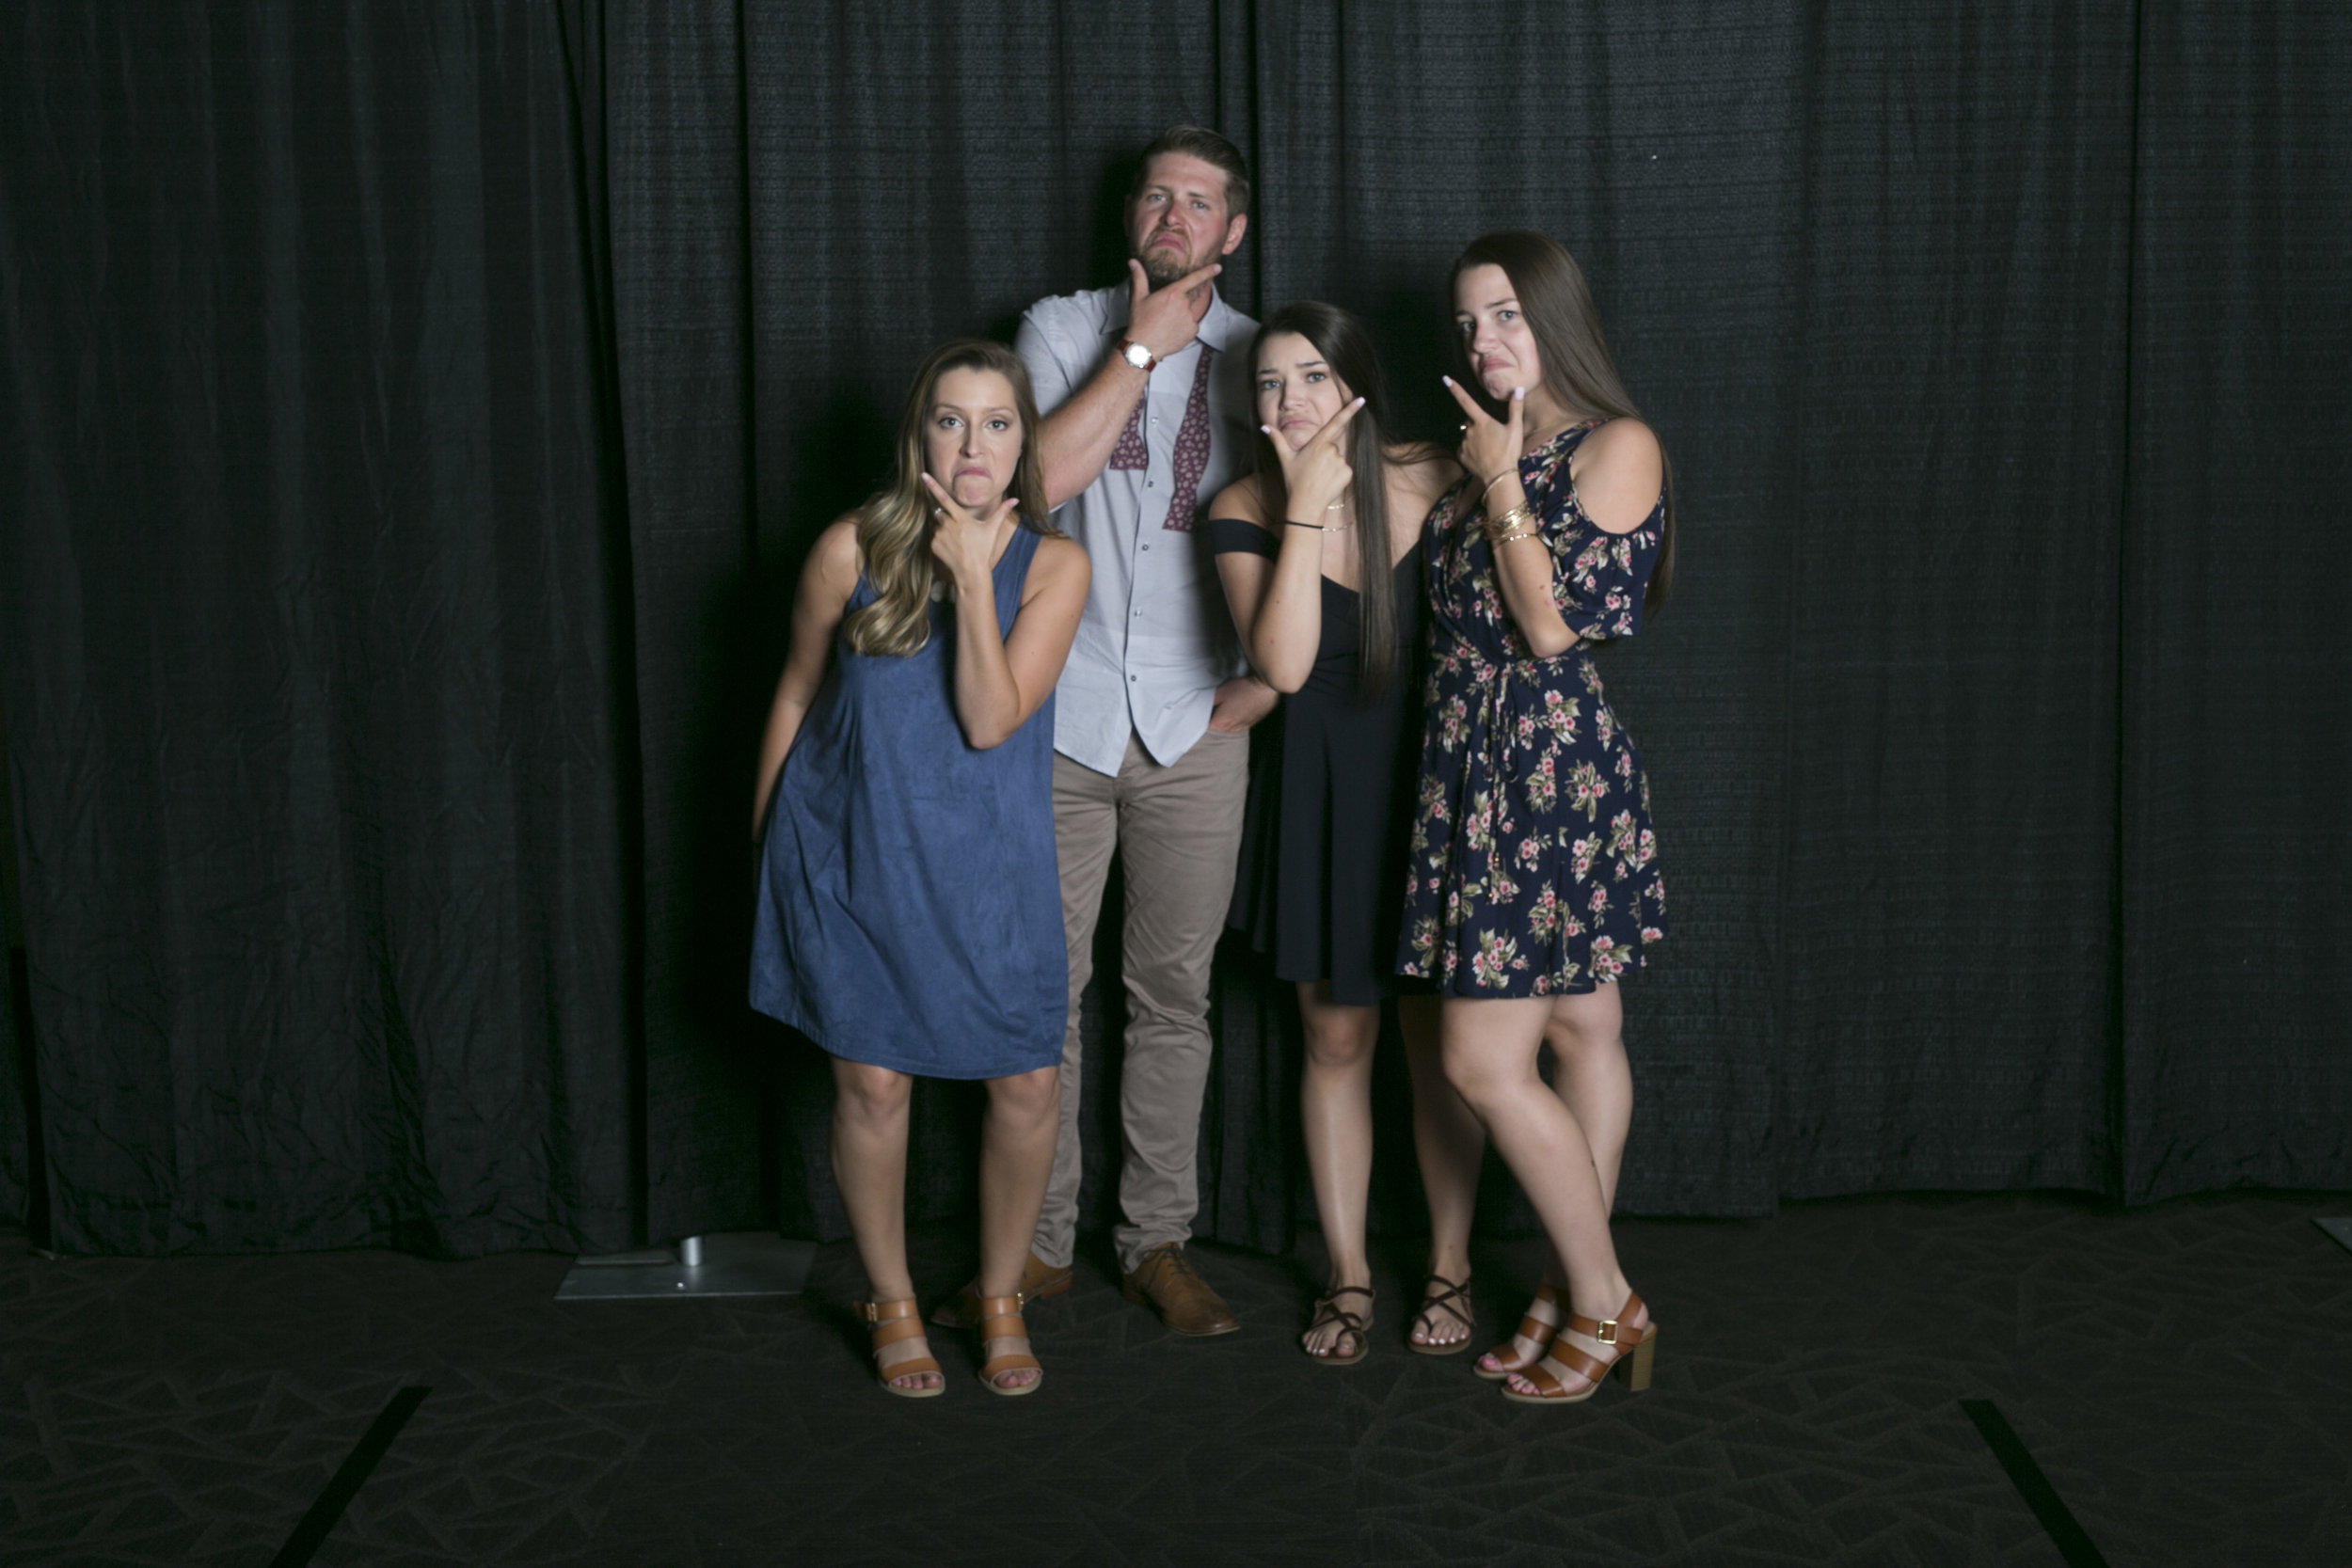 wedding photo booth-141.jpg